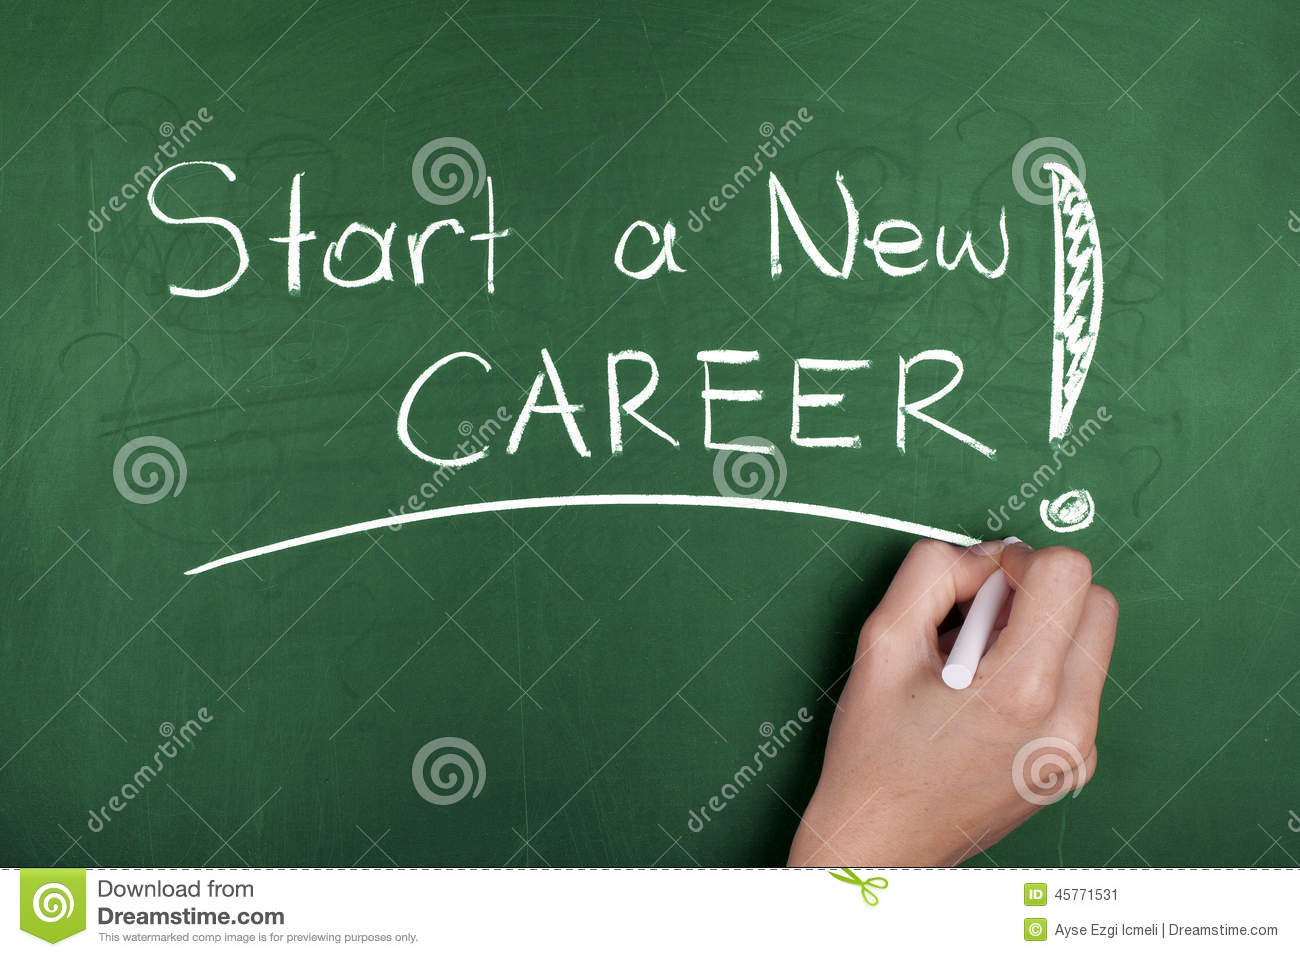 Start A New Career Stock Photo - Image: 45771531